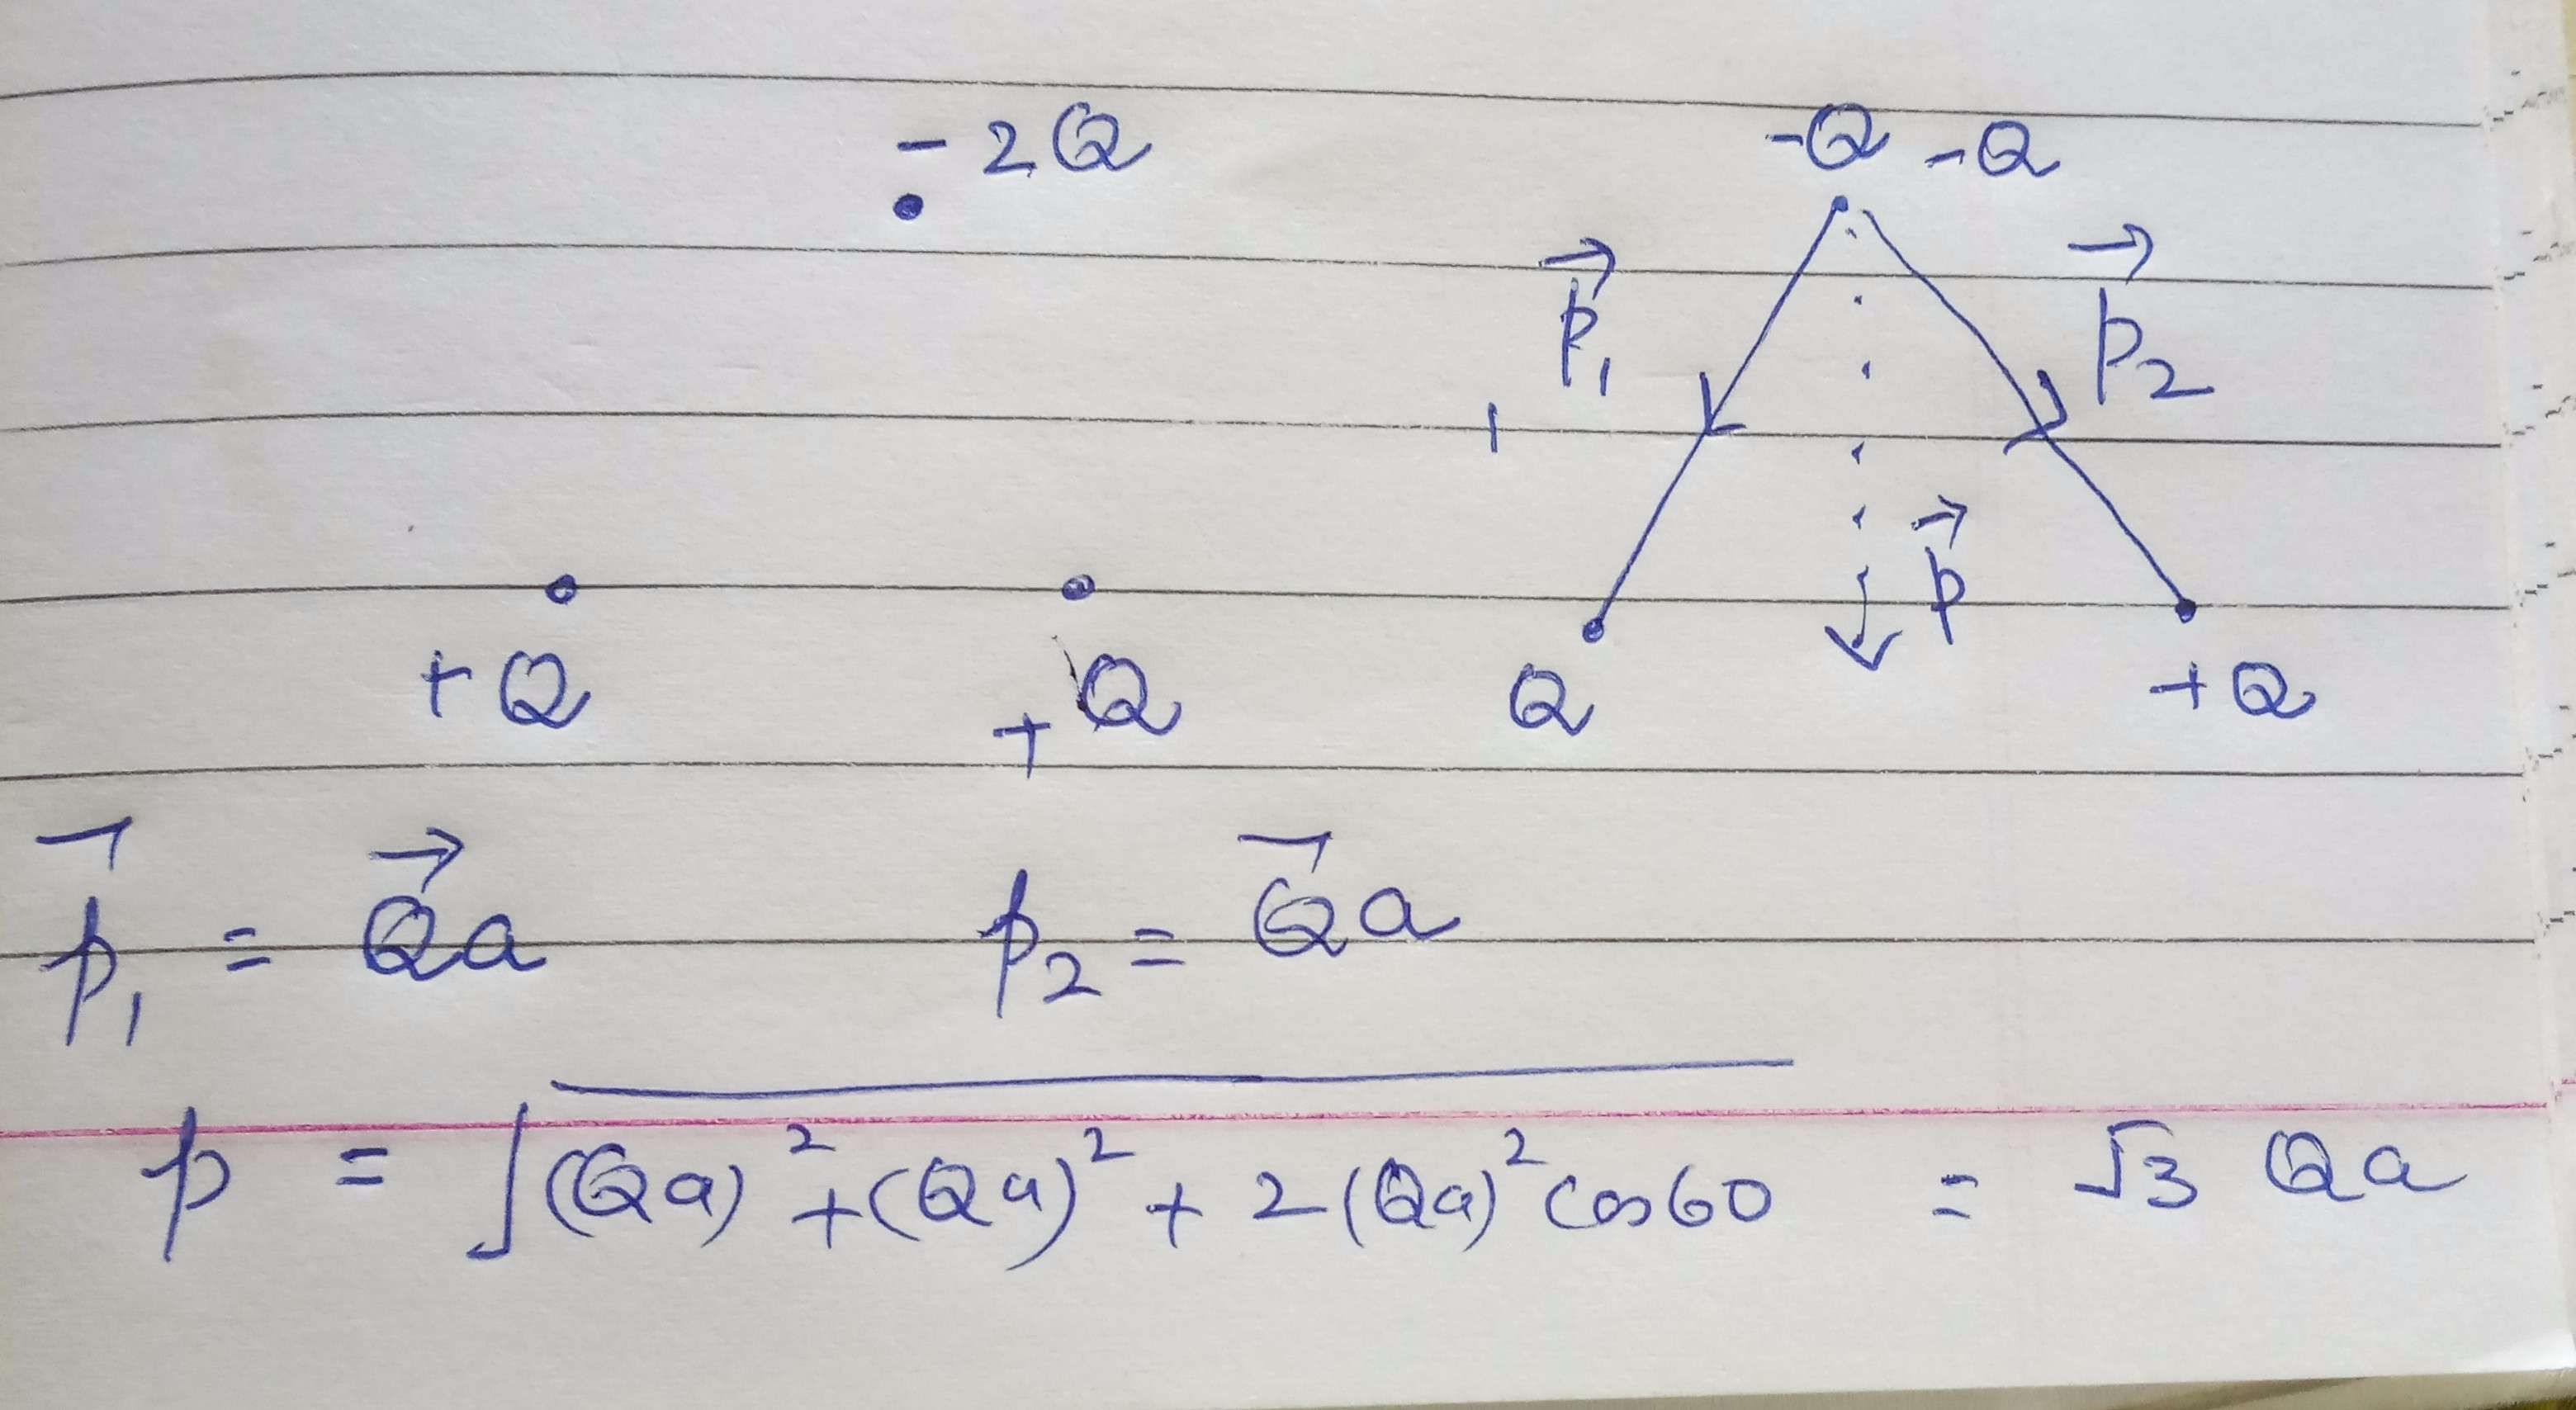 Electric charge Q ,Q ,-2Q respectively are placed at the three